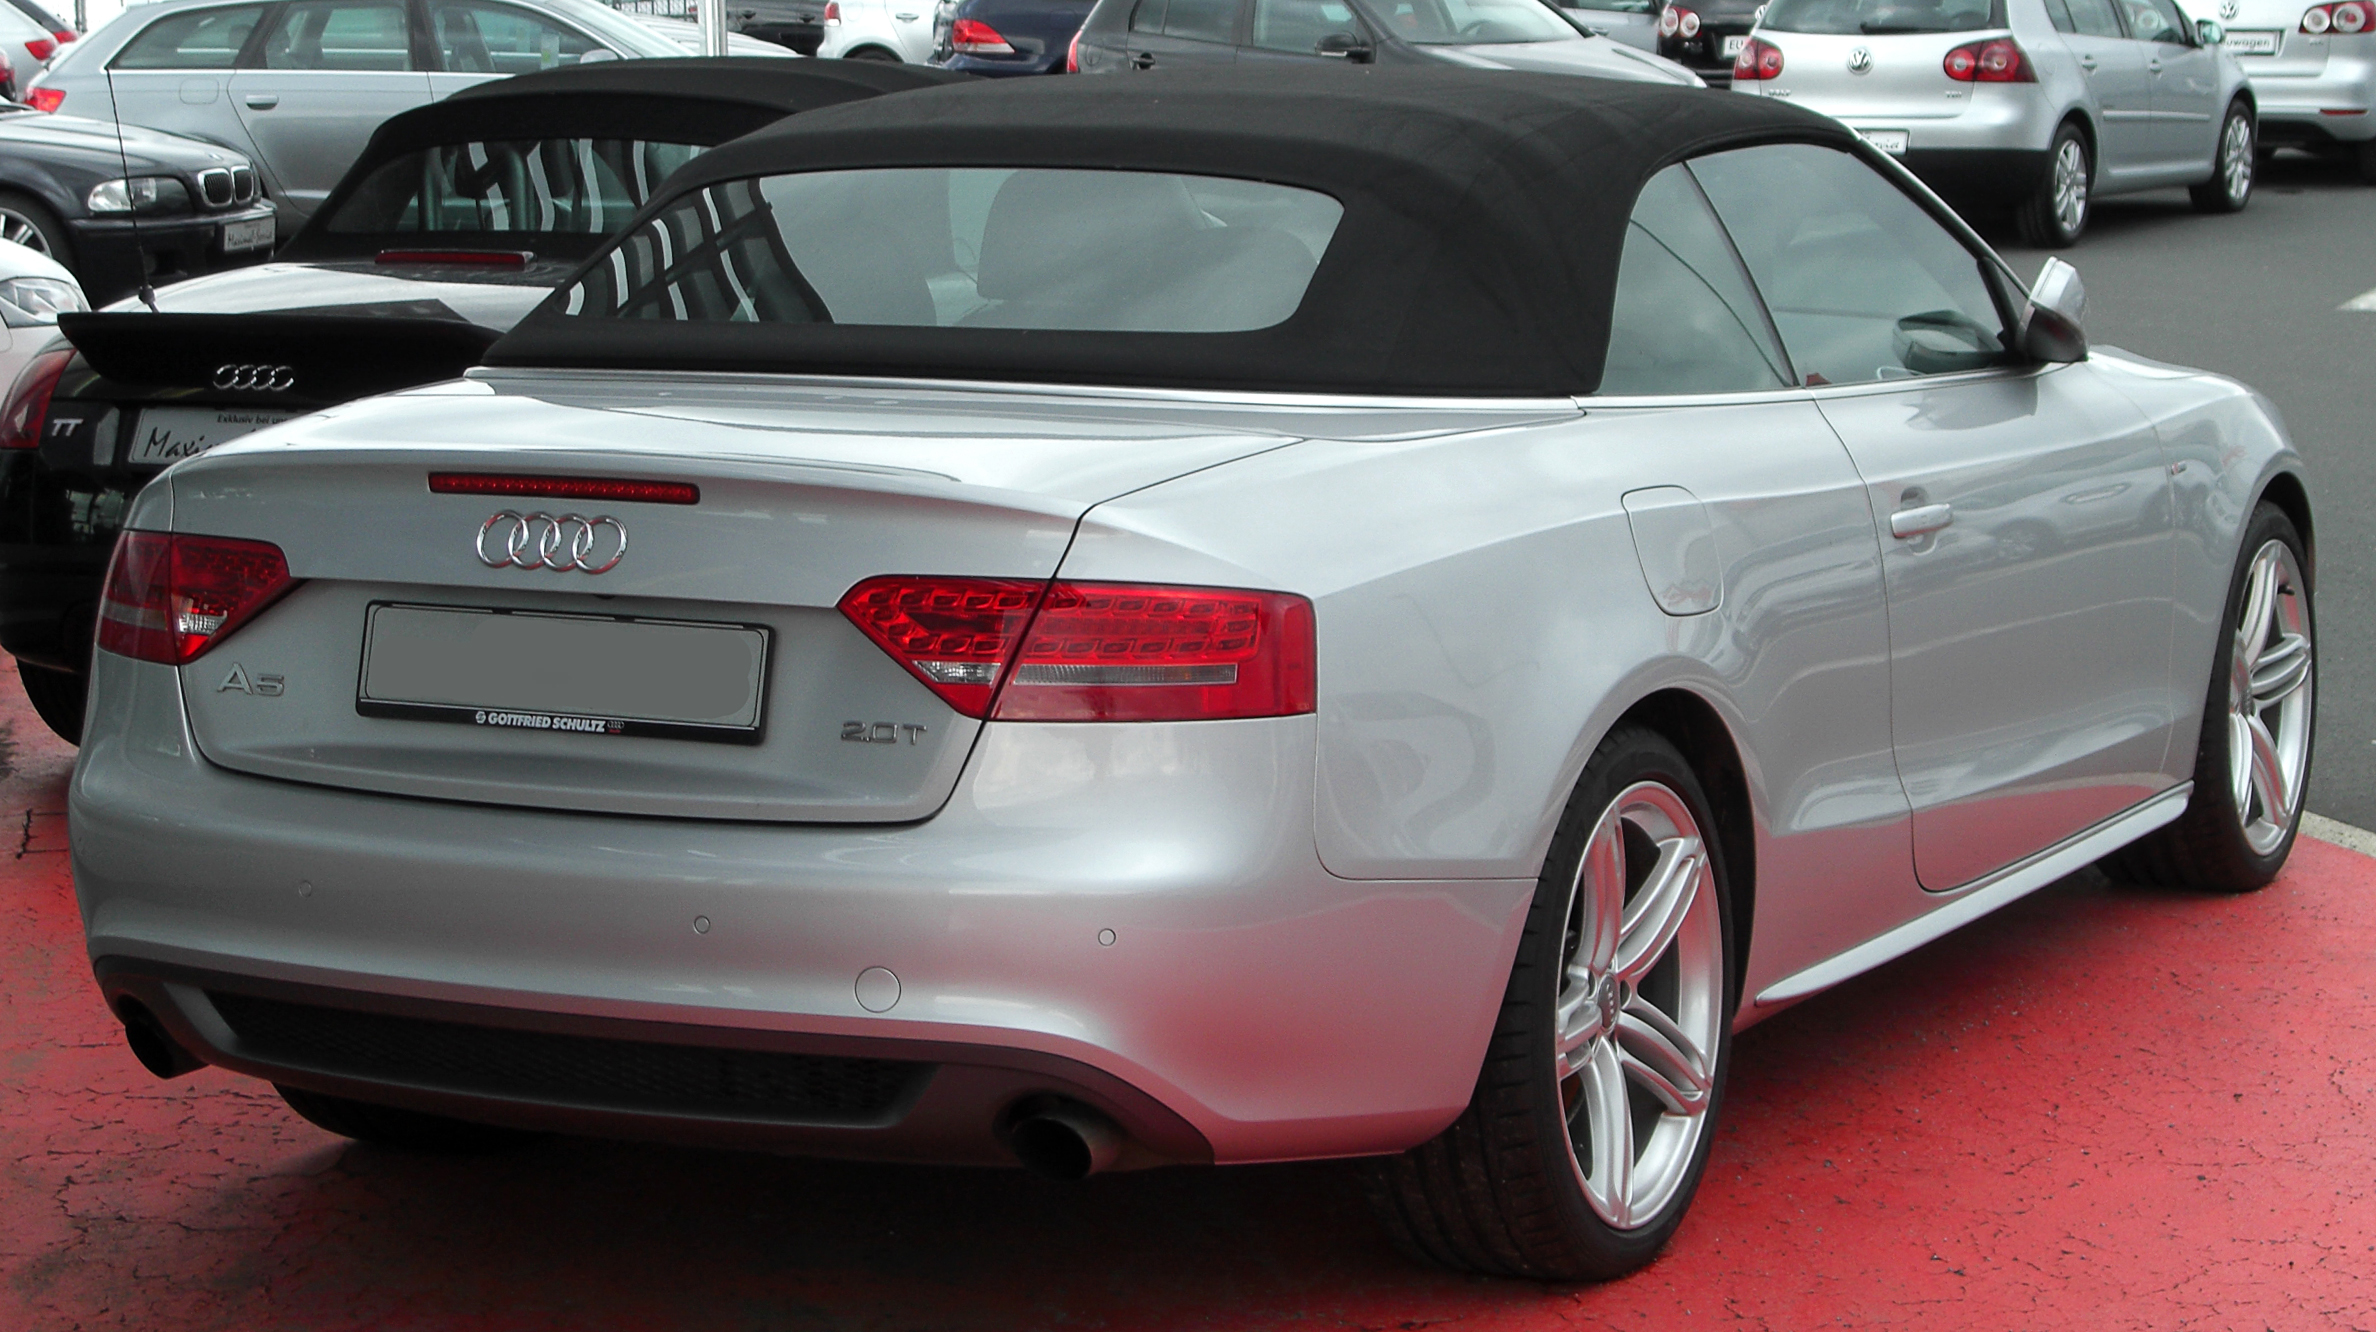 audi a5 2.0 tfsi cabriolet-pic. 2